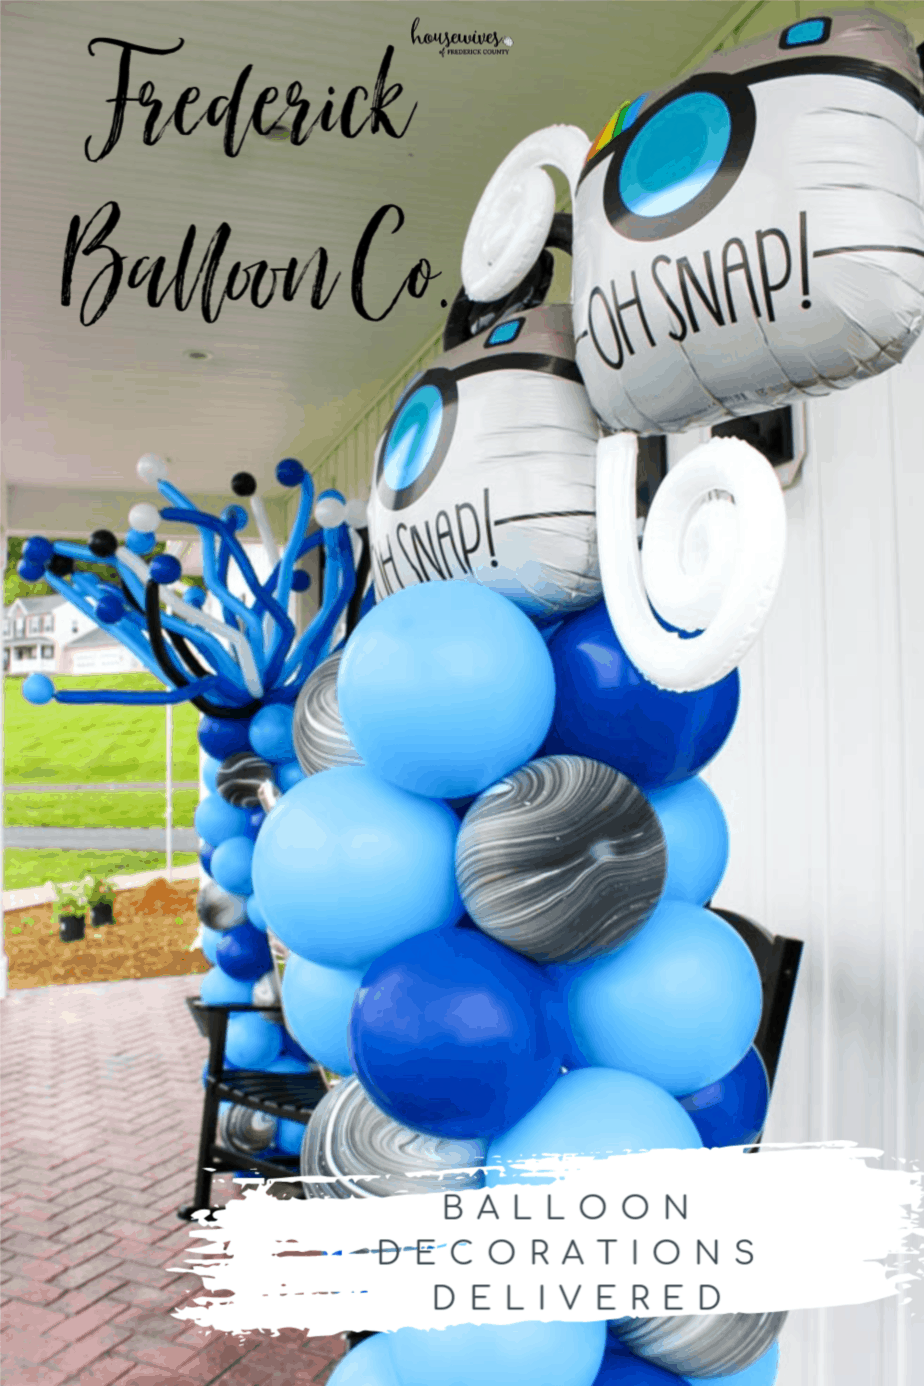 Frederick Balloon Co: Balloon Decorations Delivered!